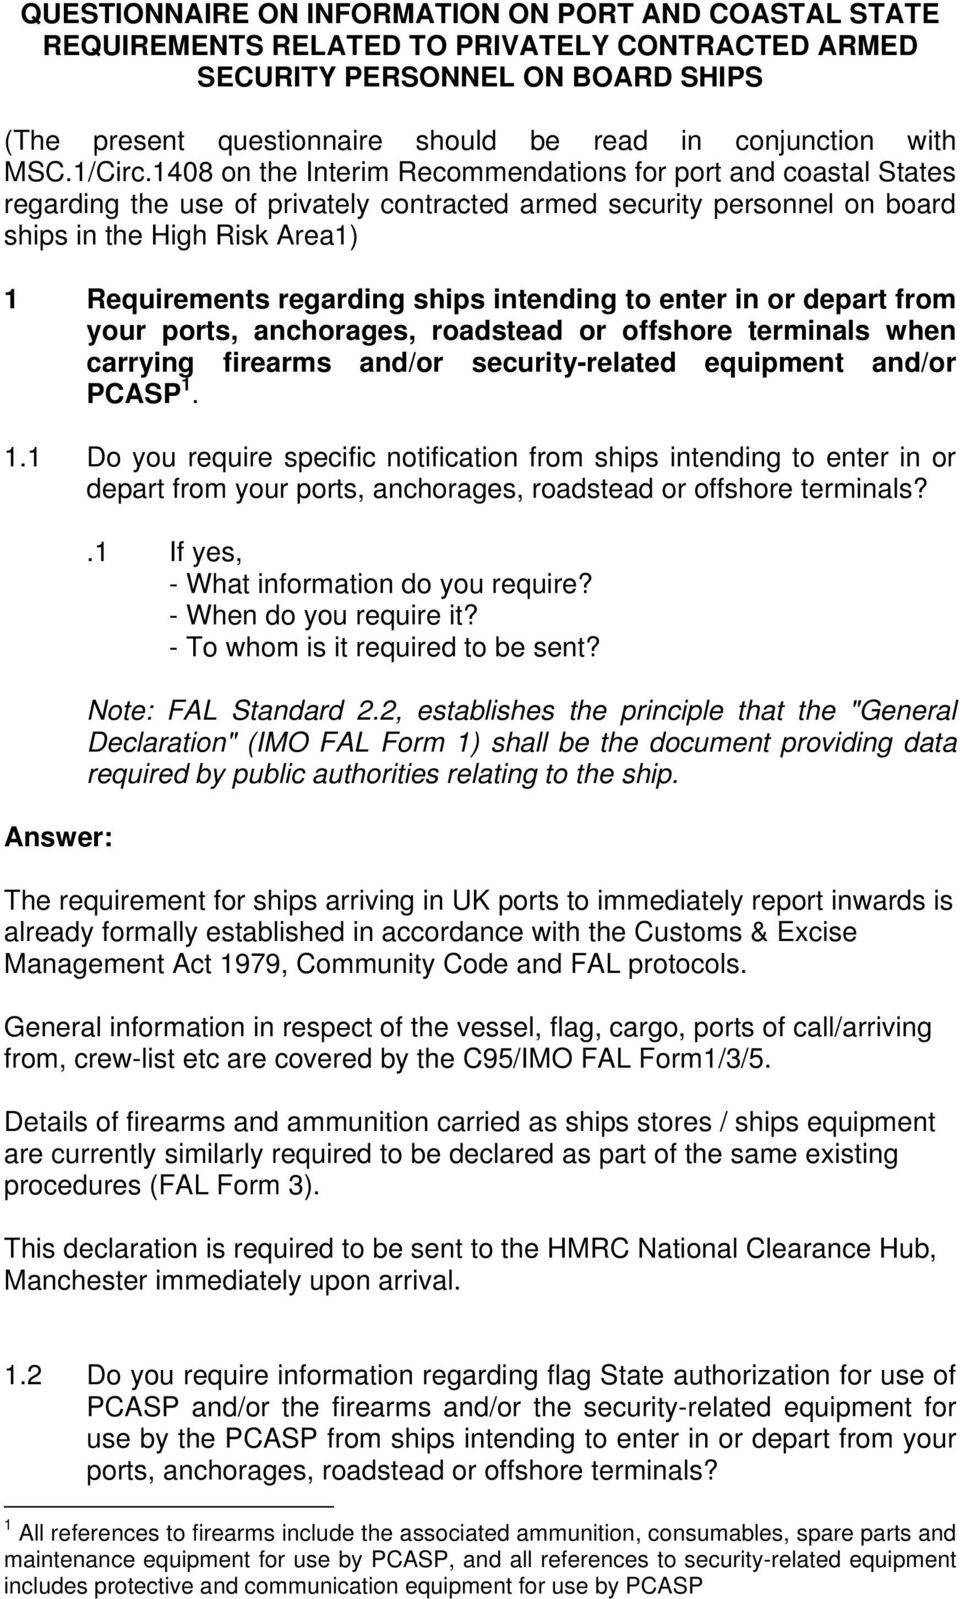 1408 on the Interim Recommendations for port and coastal States regarding the use of privately contracted armed security personnel on board ships in the High Risk Area1) 1 Requirements regarding